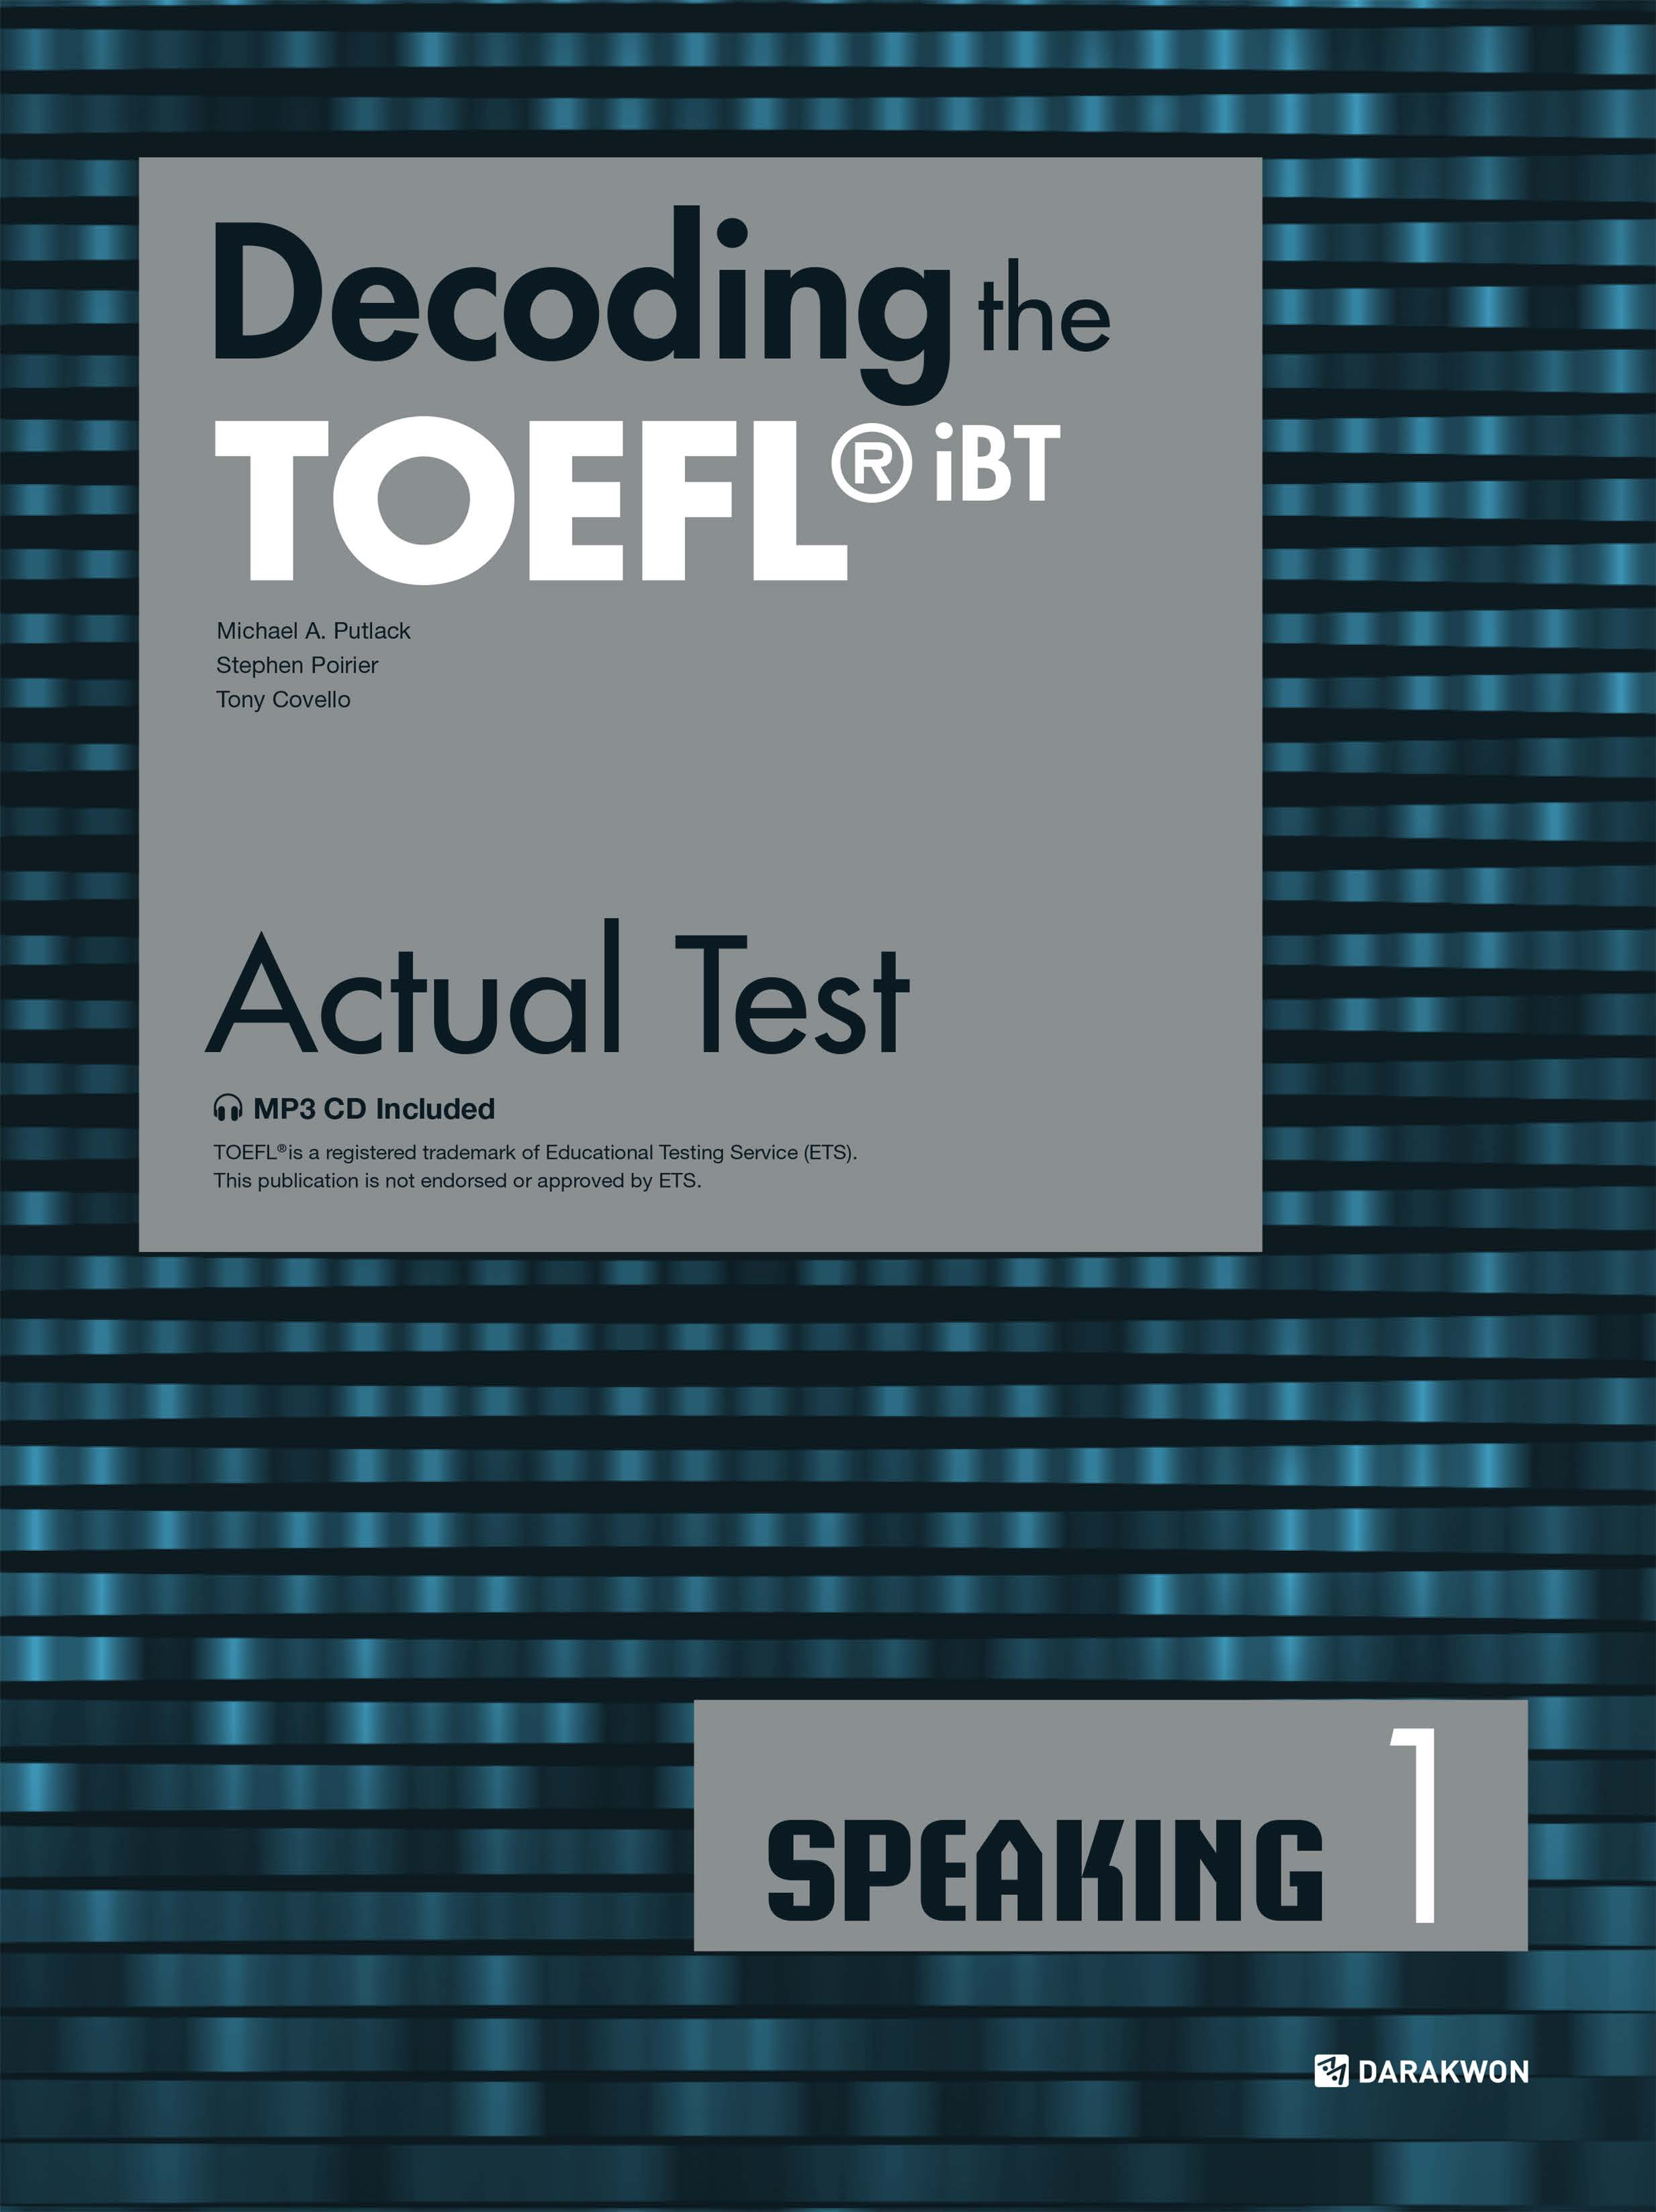 [Decoding the TOEFL iBT Actual Test] Decoding the TOEFL iBT Actual Test SPEAKING 1